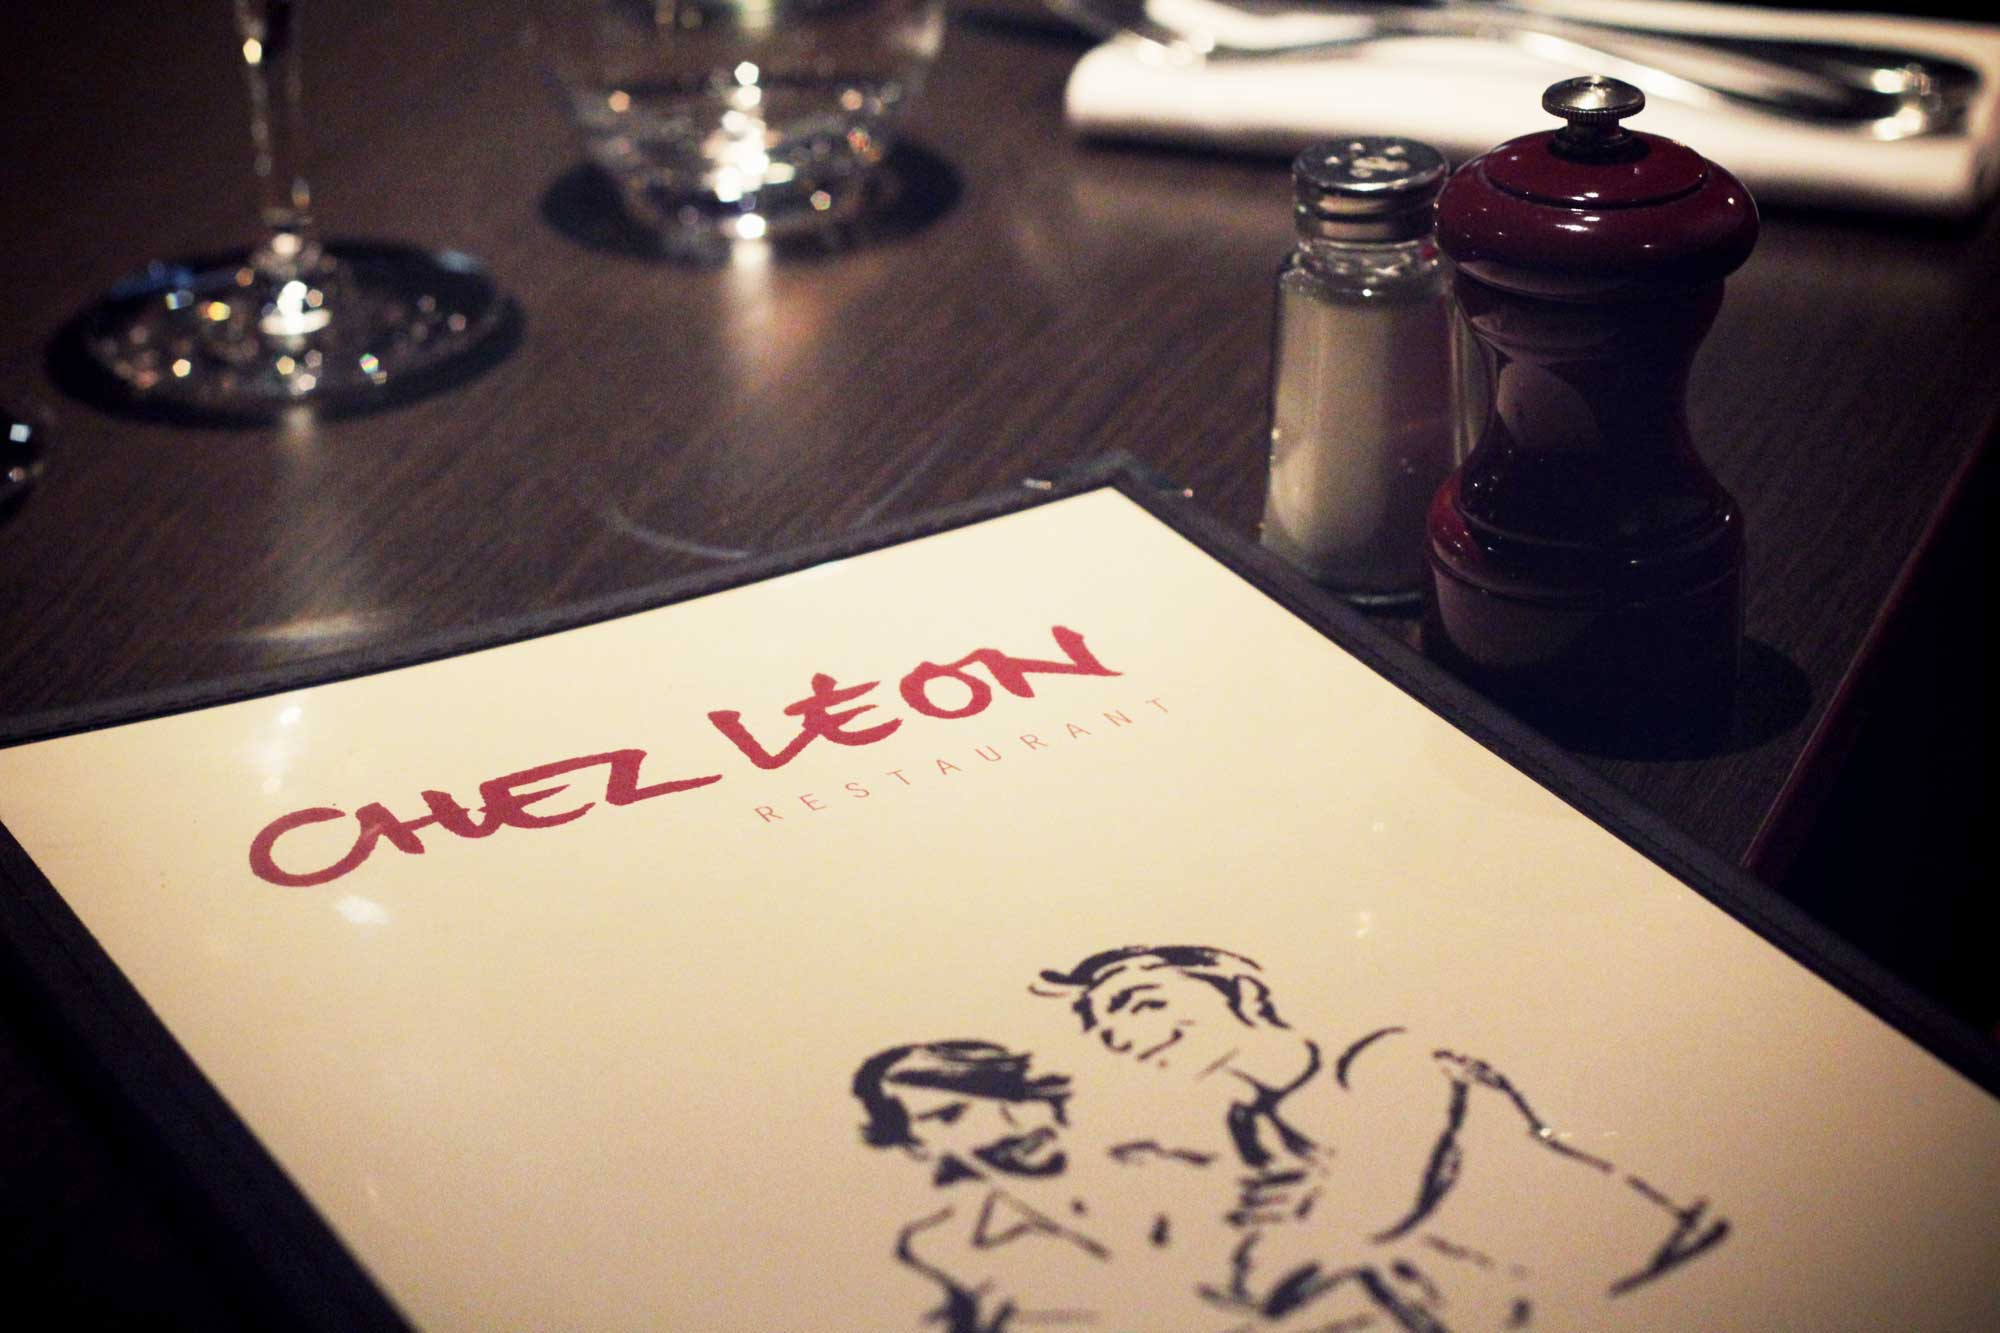 Chez l on cuisine cr ative du terroir happy city for Chez leon meuble montreal